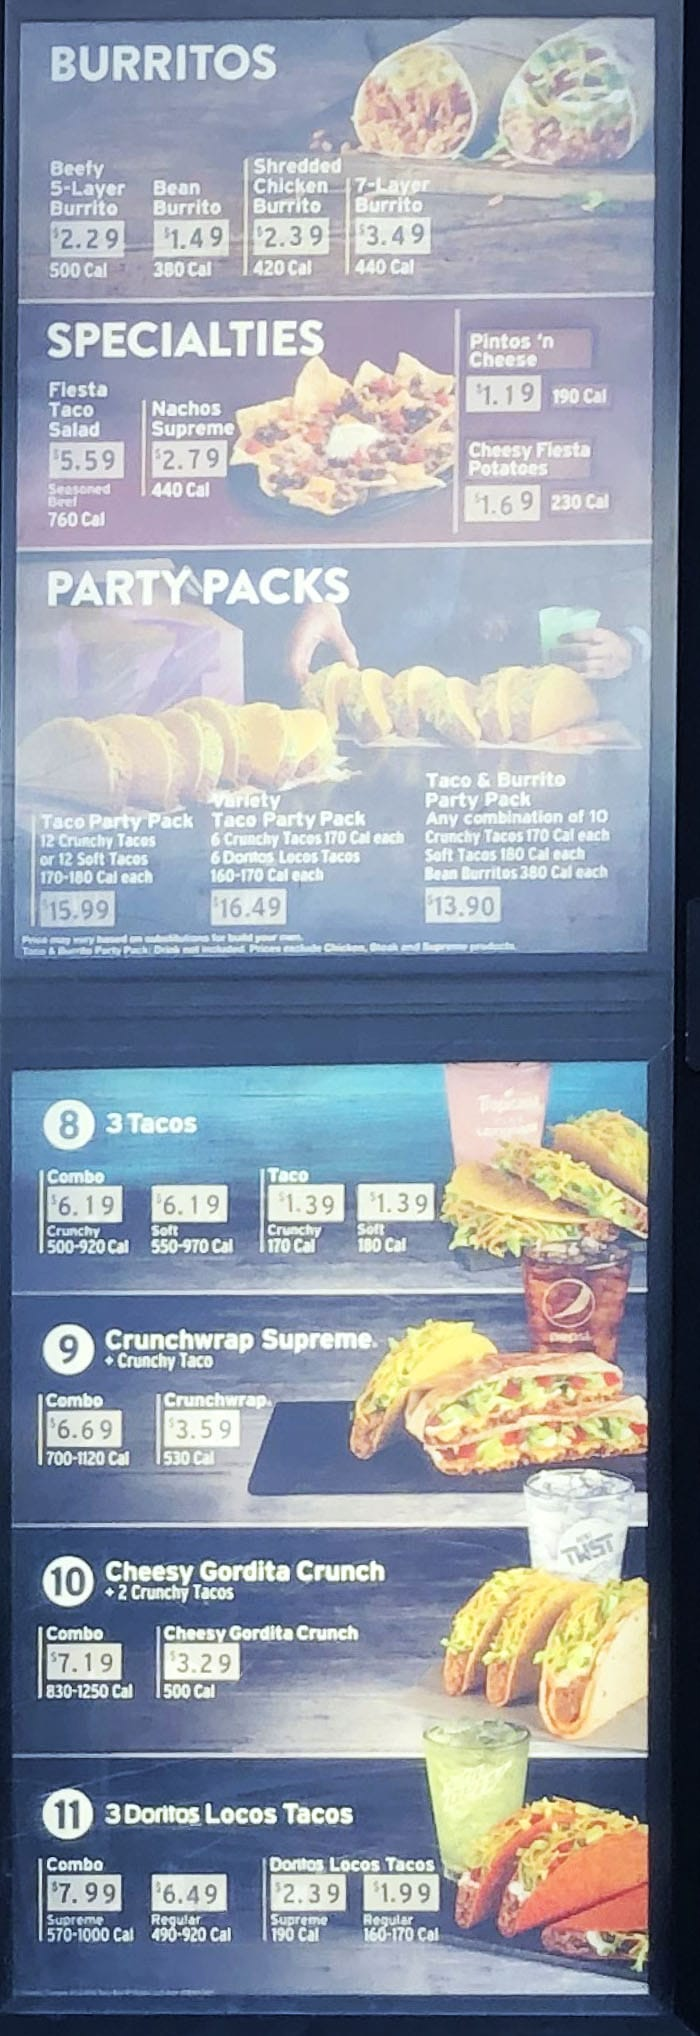 Taco Bell menu - burritos, party packs, more combos